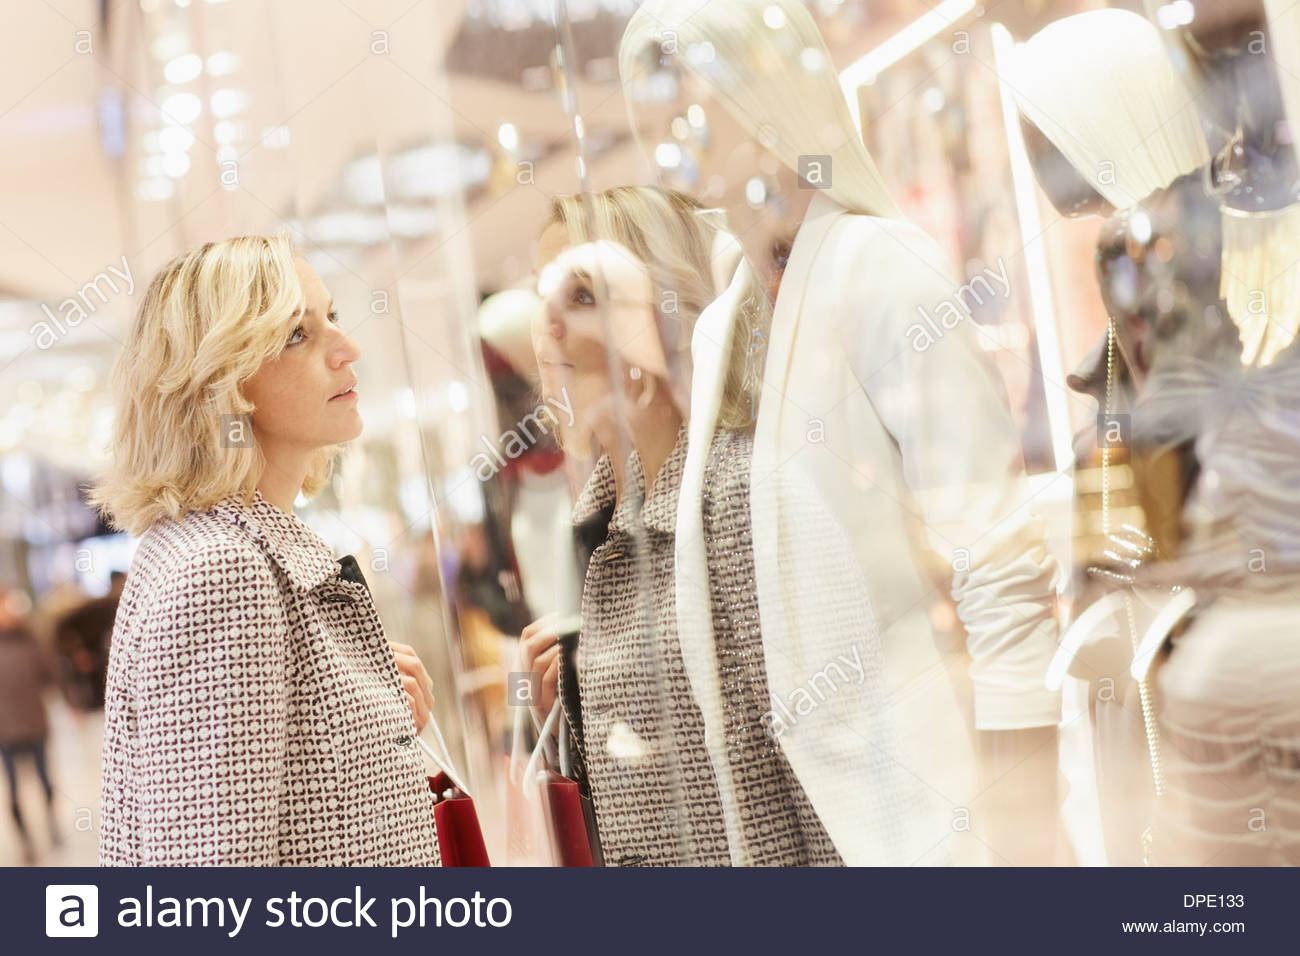 Mid adult female shopper looking at display window in shopping centre - Stock Image